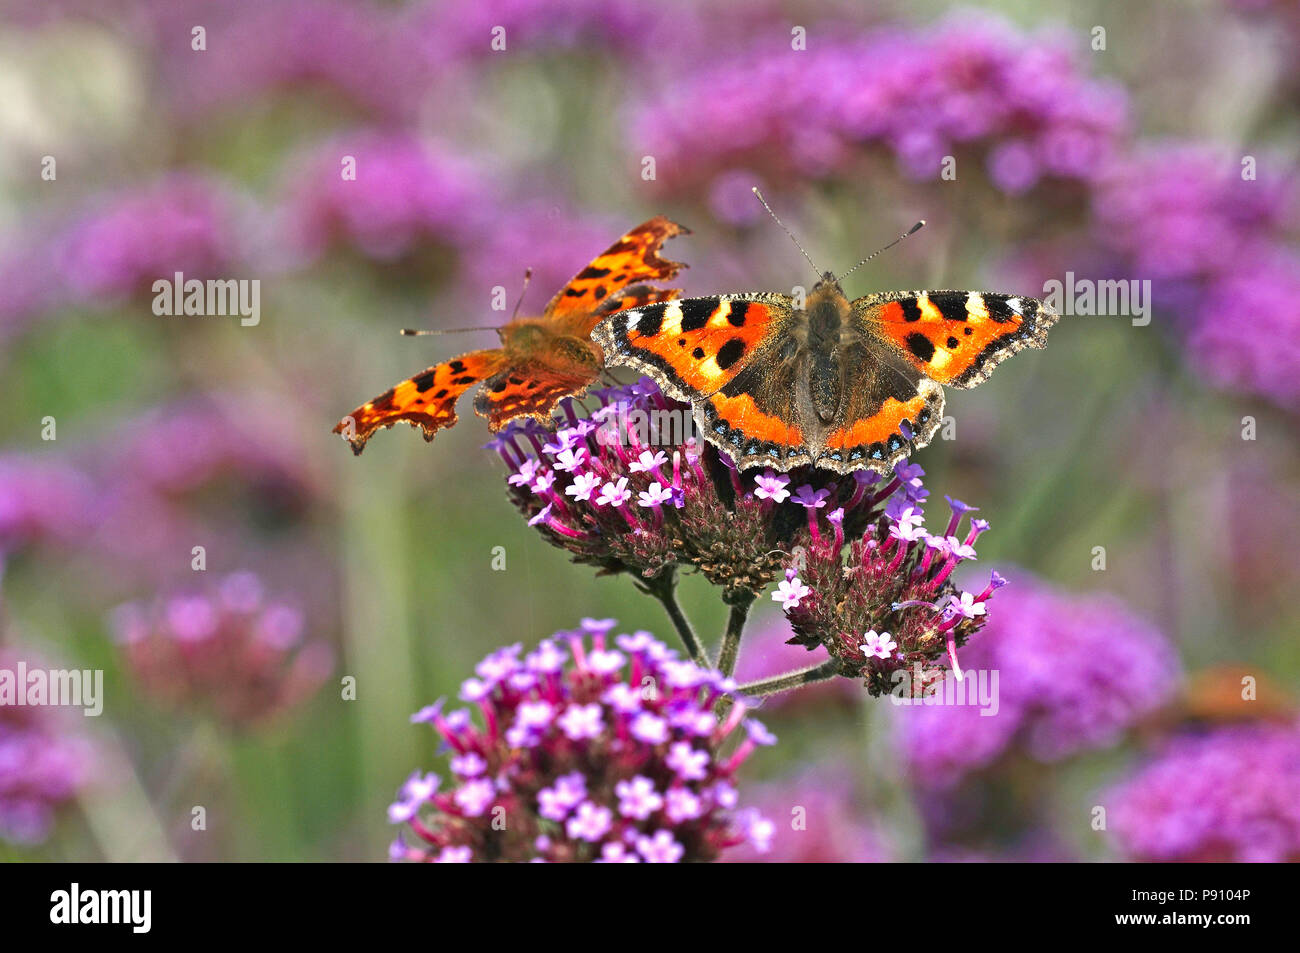 The Comma butterfly and a Tortoiseshell butterfly in a cottage garden - Stock Image